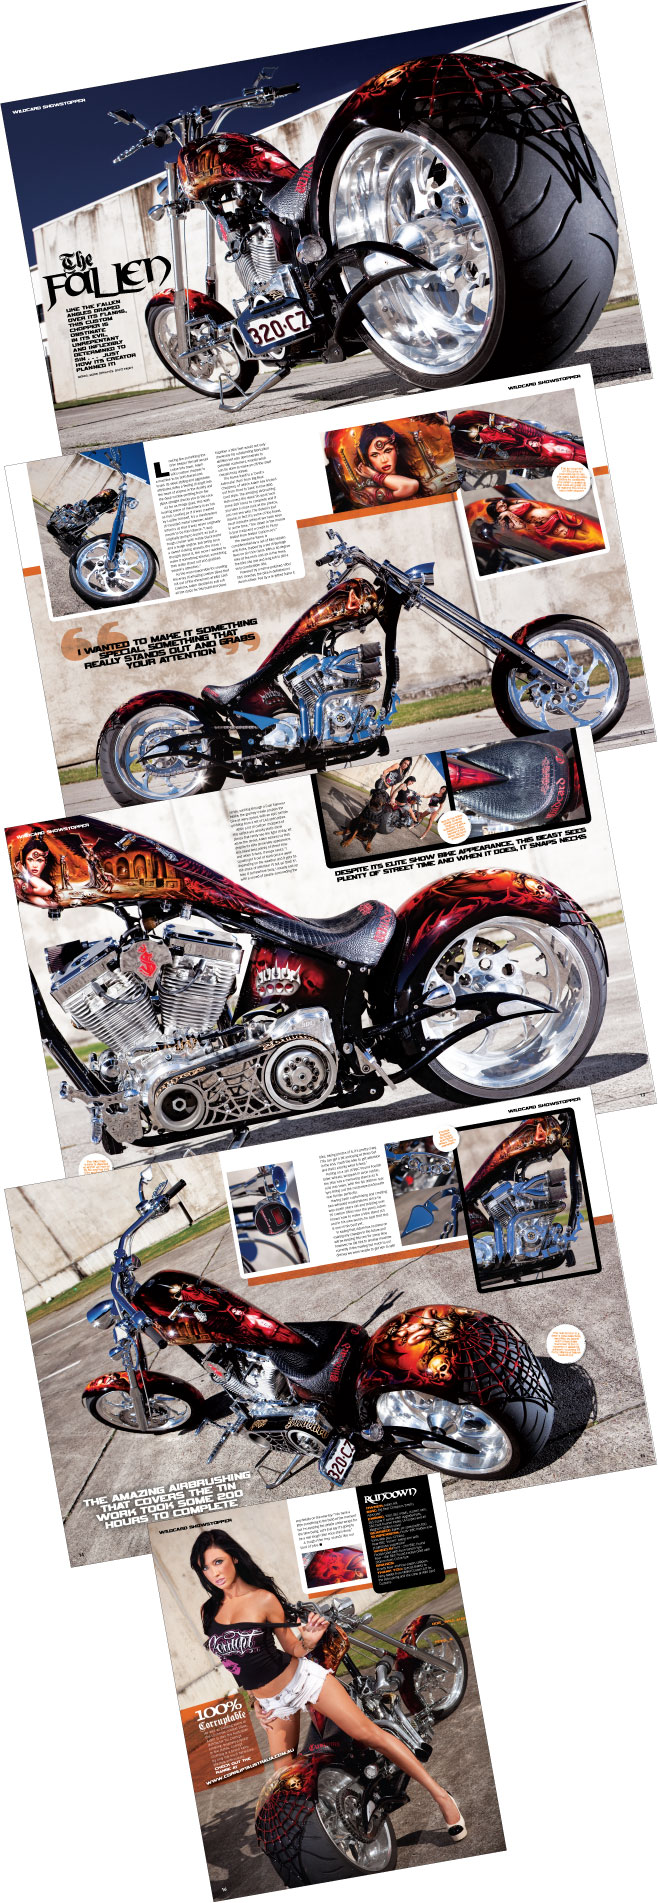 Wild Aussie Choppers Article